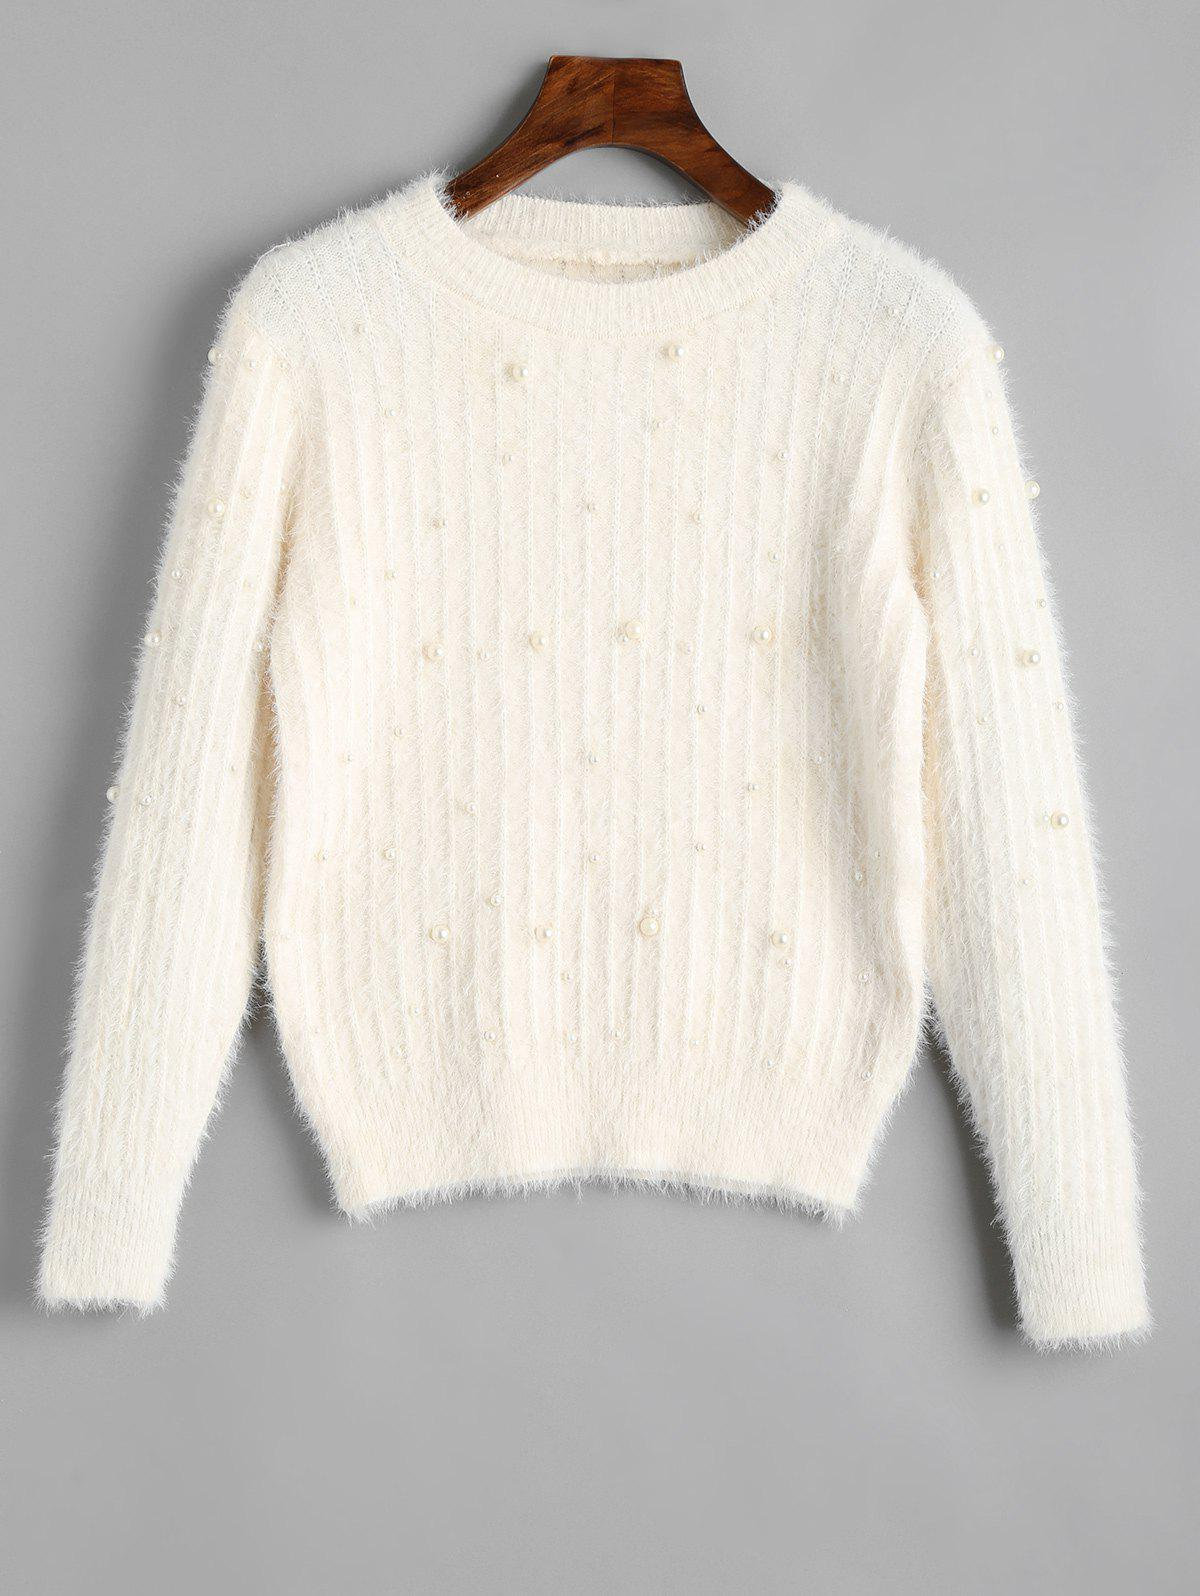 Discount Crew Neck Beaded Embellished Sweater